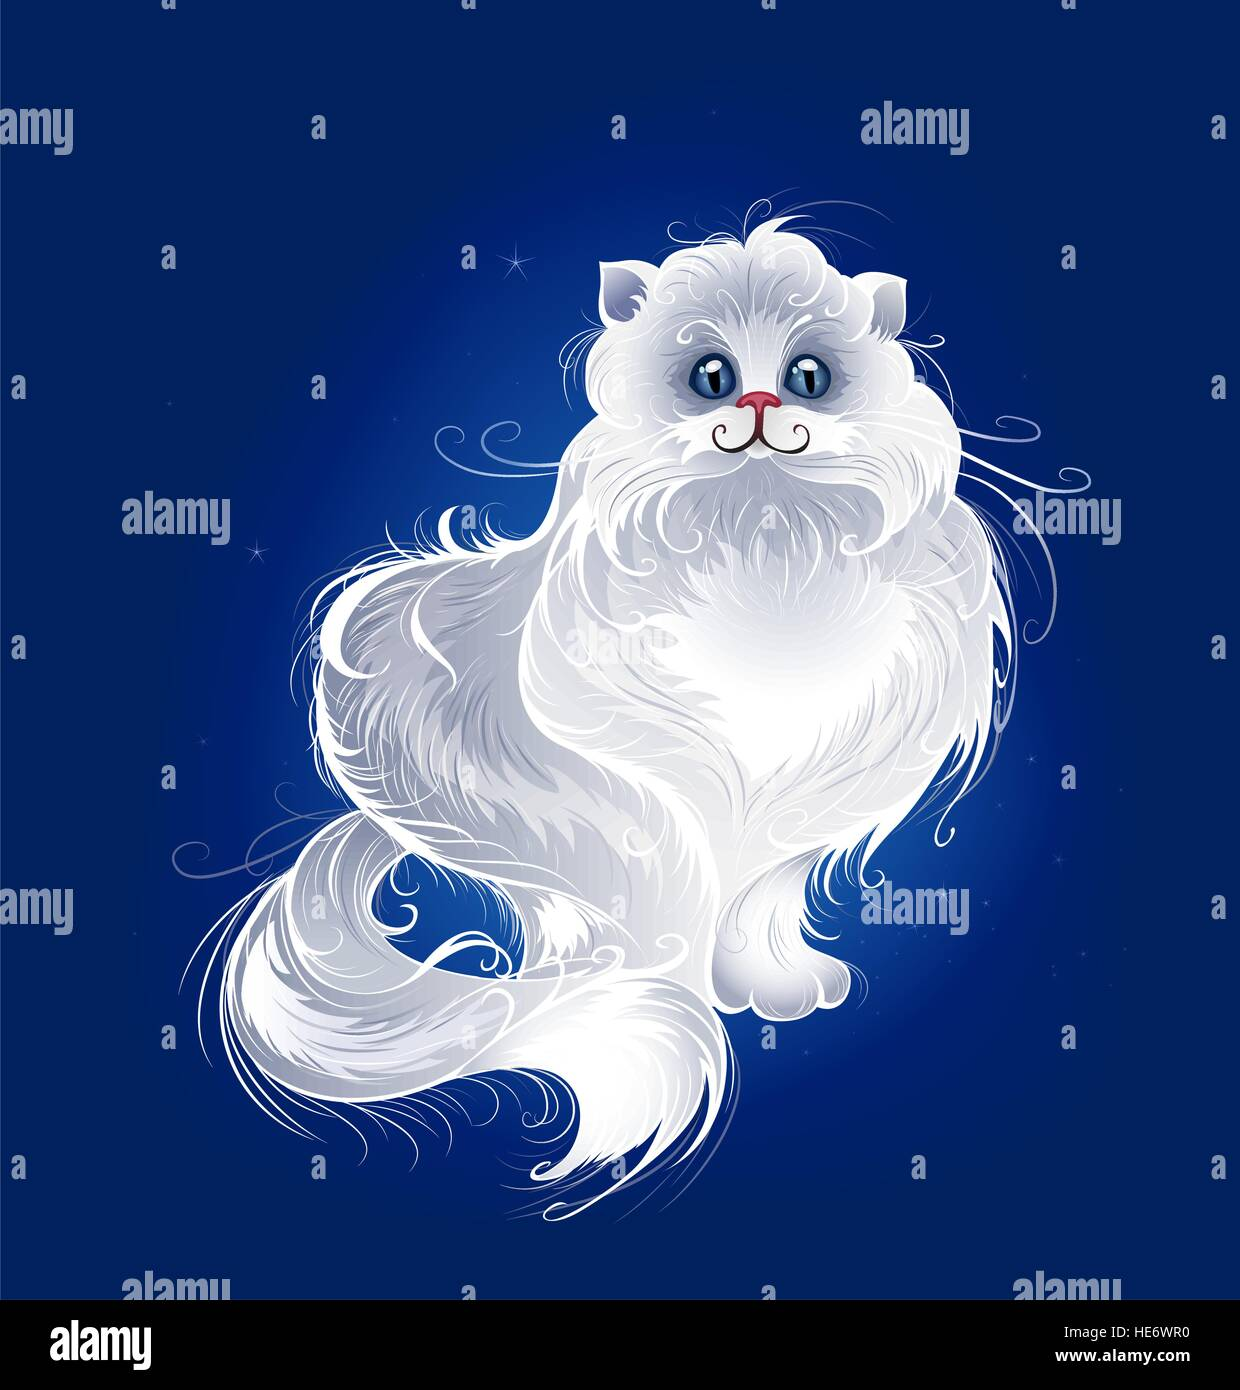 artistically painted, white, very fluffy Persian cat on a dark blue glowing background. - Stock Image